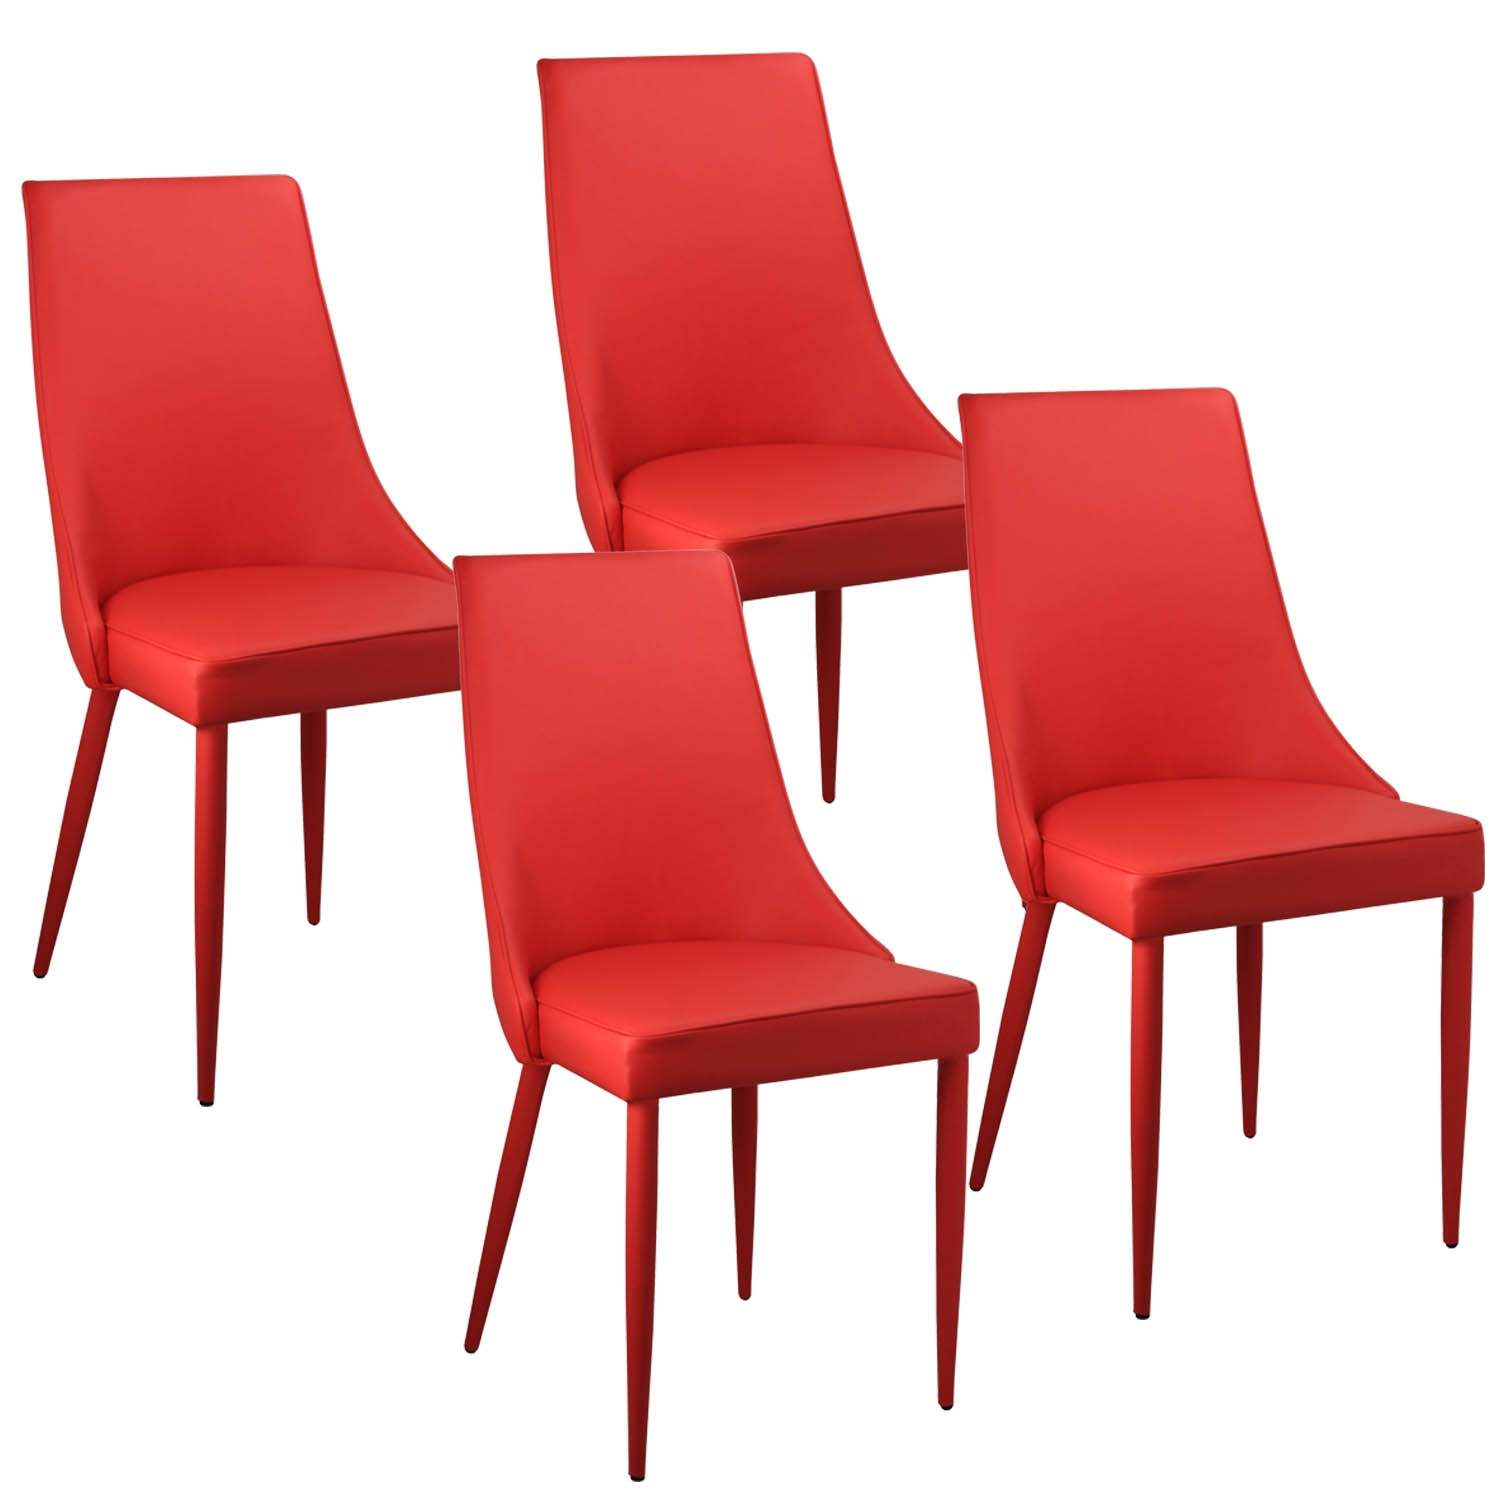 Deco in paris lot de 4 chaises rouge avev avev rouge x4 for Lot 4 chaises